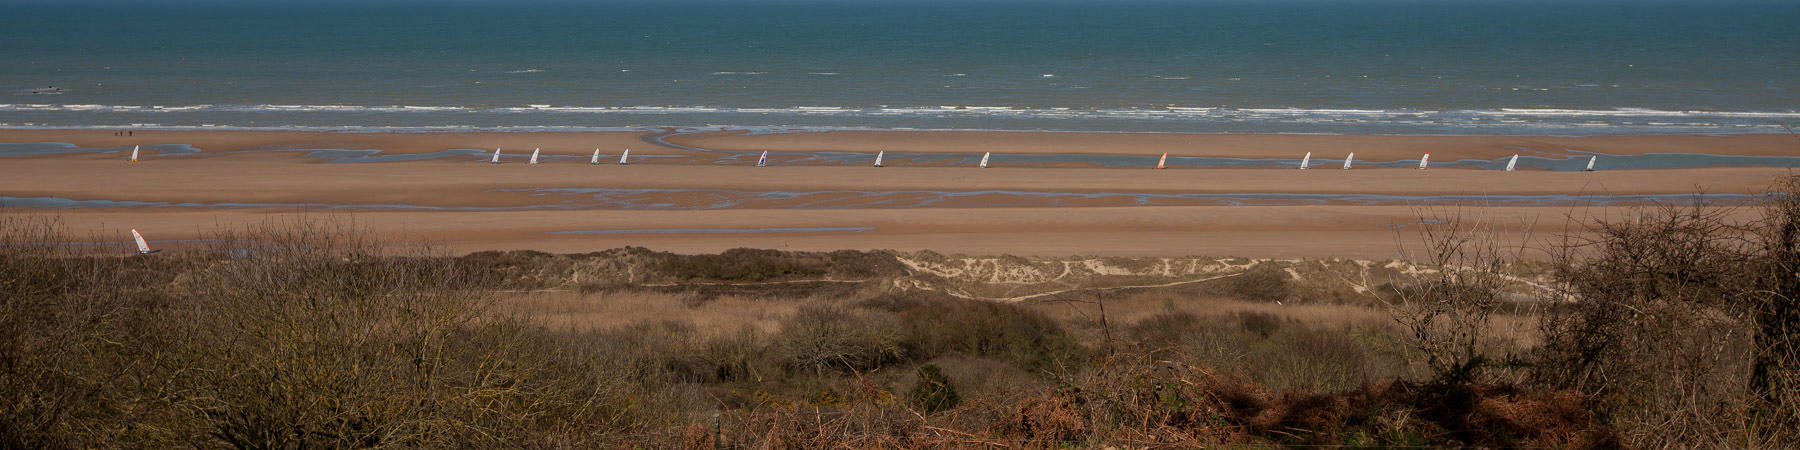 Sand yachting at Omaha Beach - Photo Pêcheur d'Images